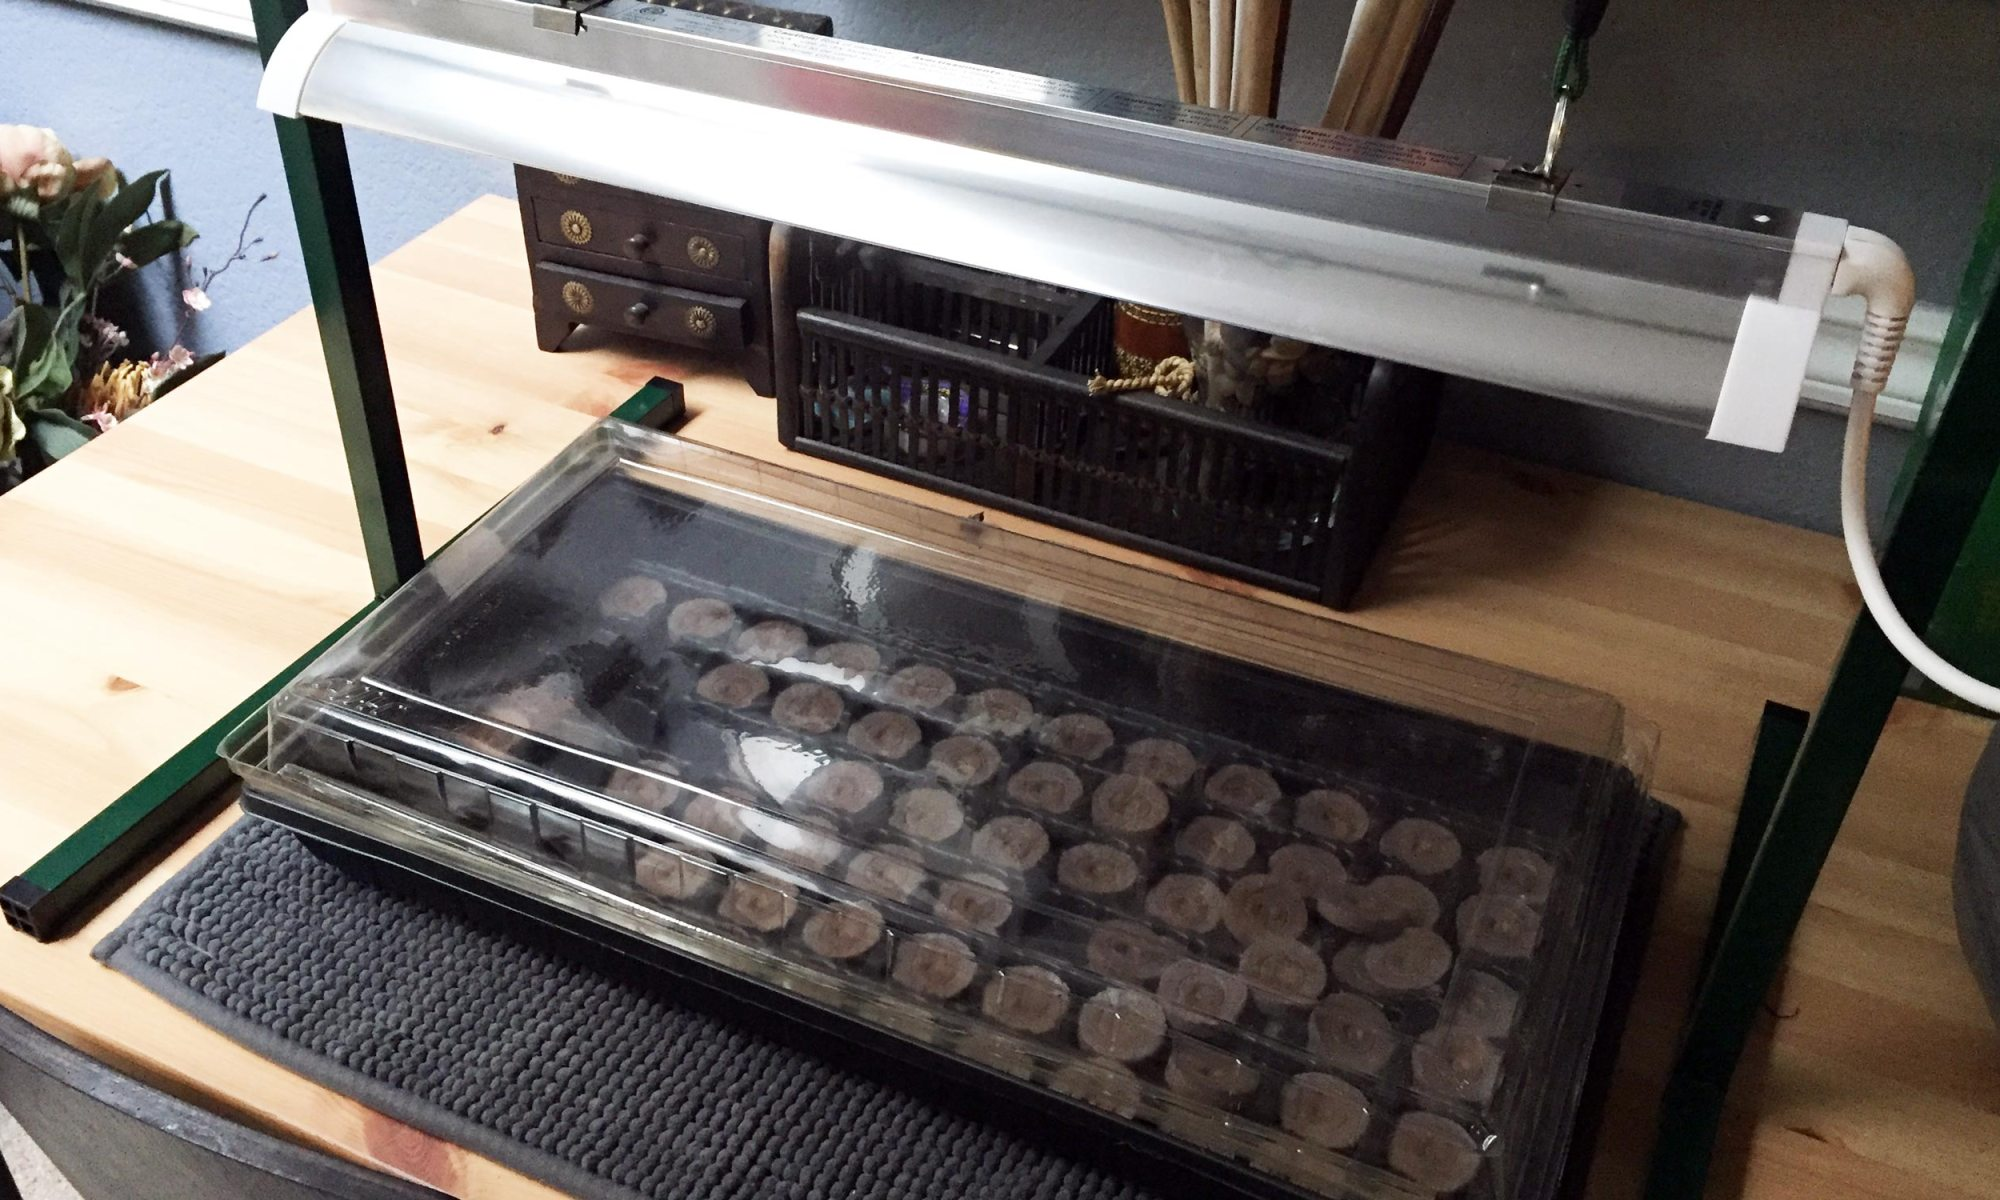 Light stand with seedling tray